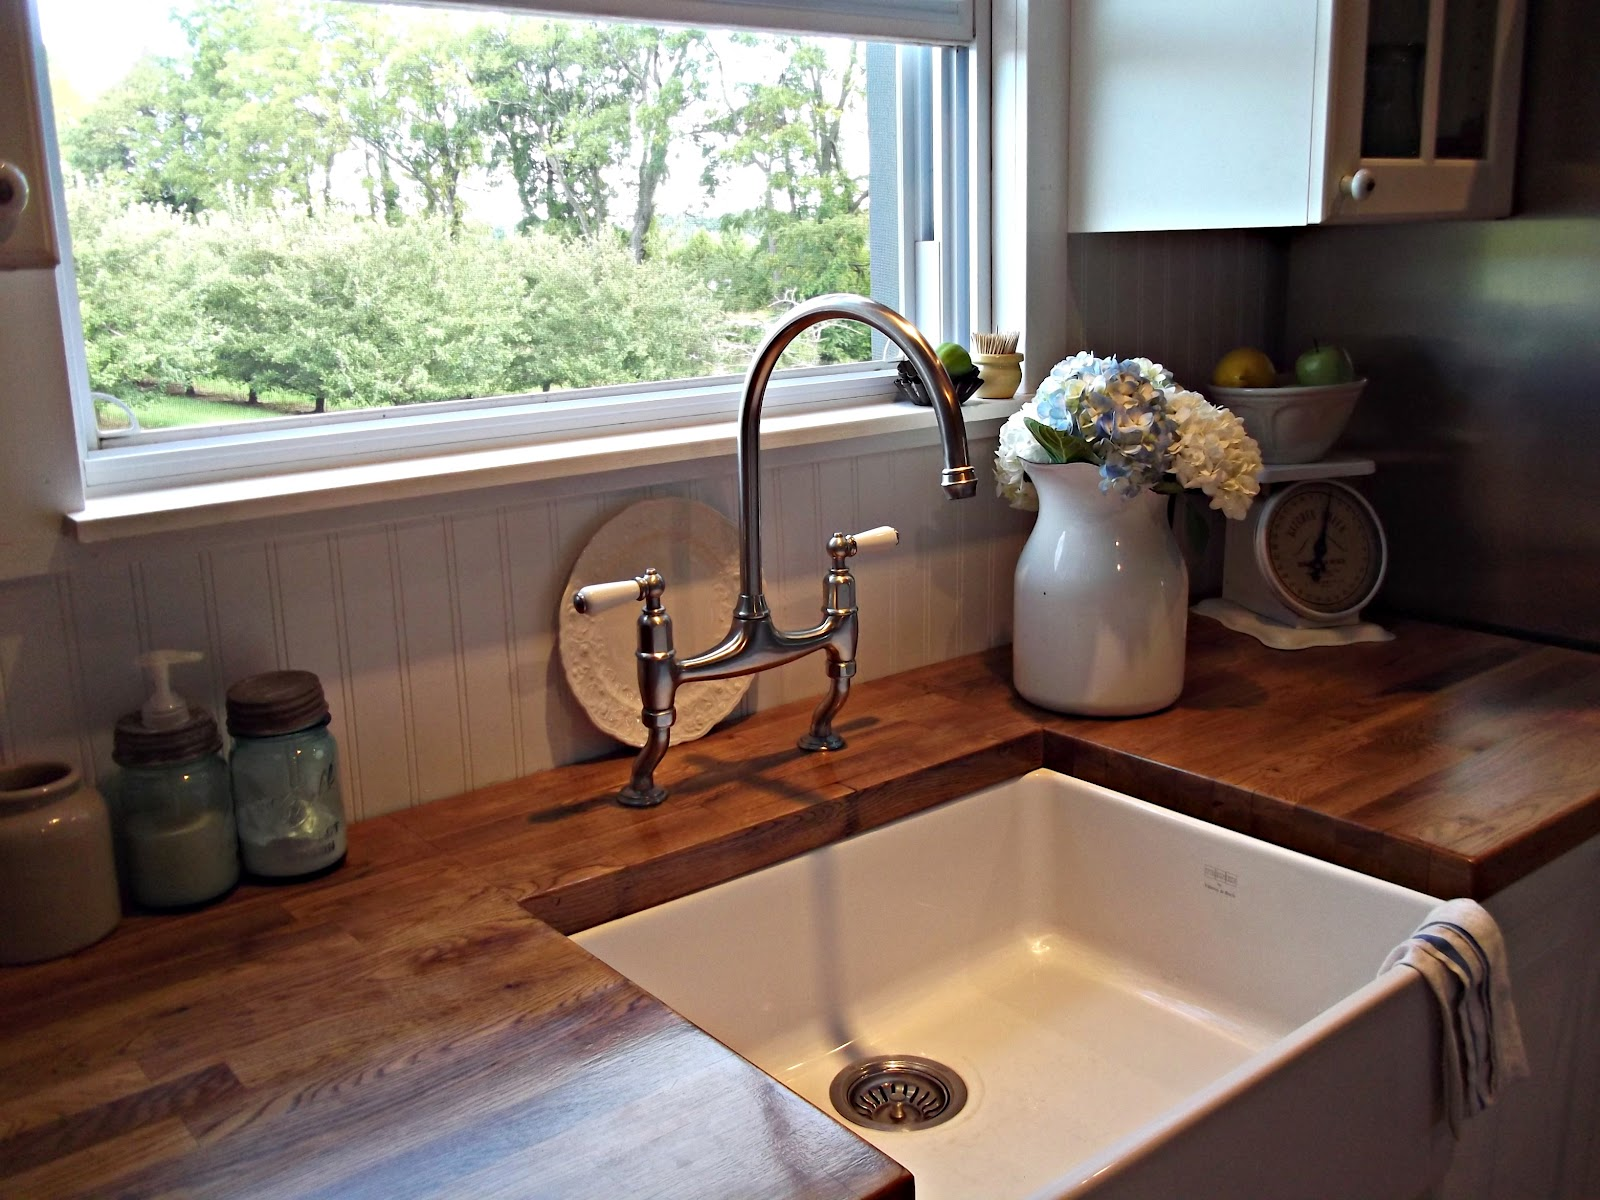 Kitchen Sink Farm Style : ... Cottage Farmhouse Kitchen Sink. on farmhouse style kitchen sink